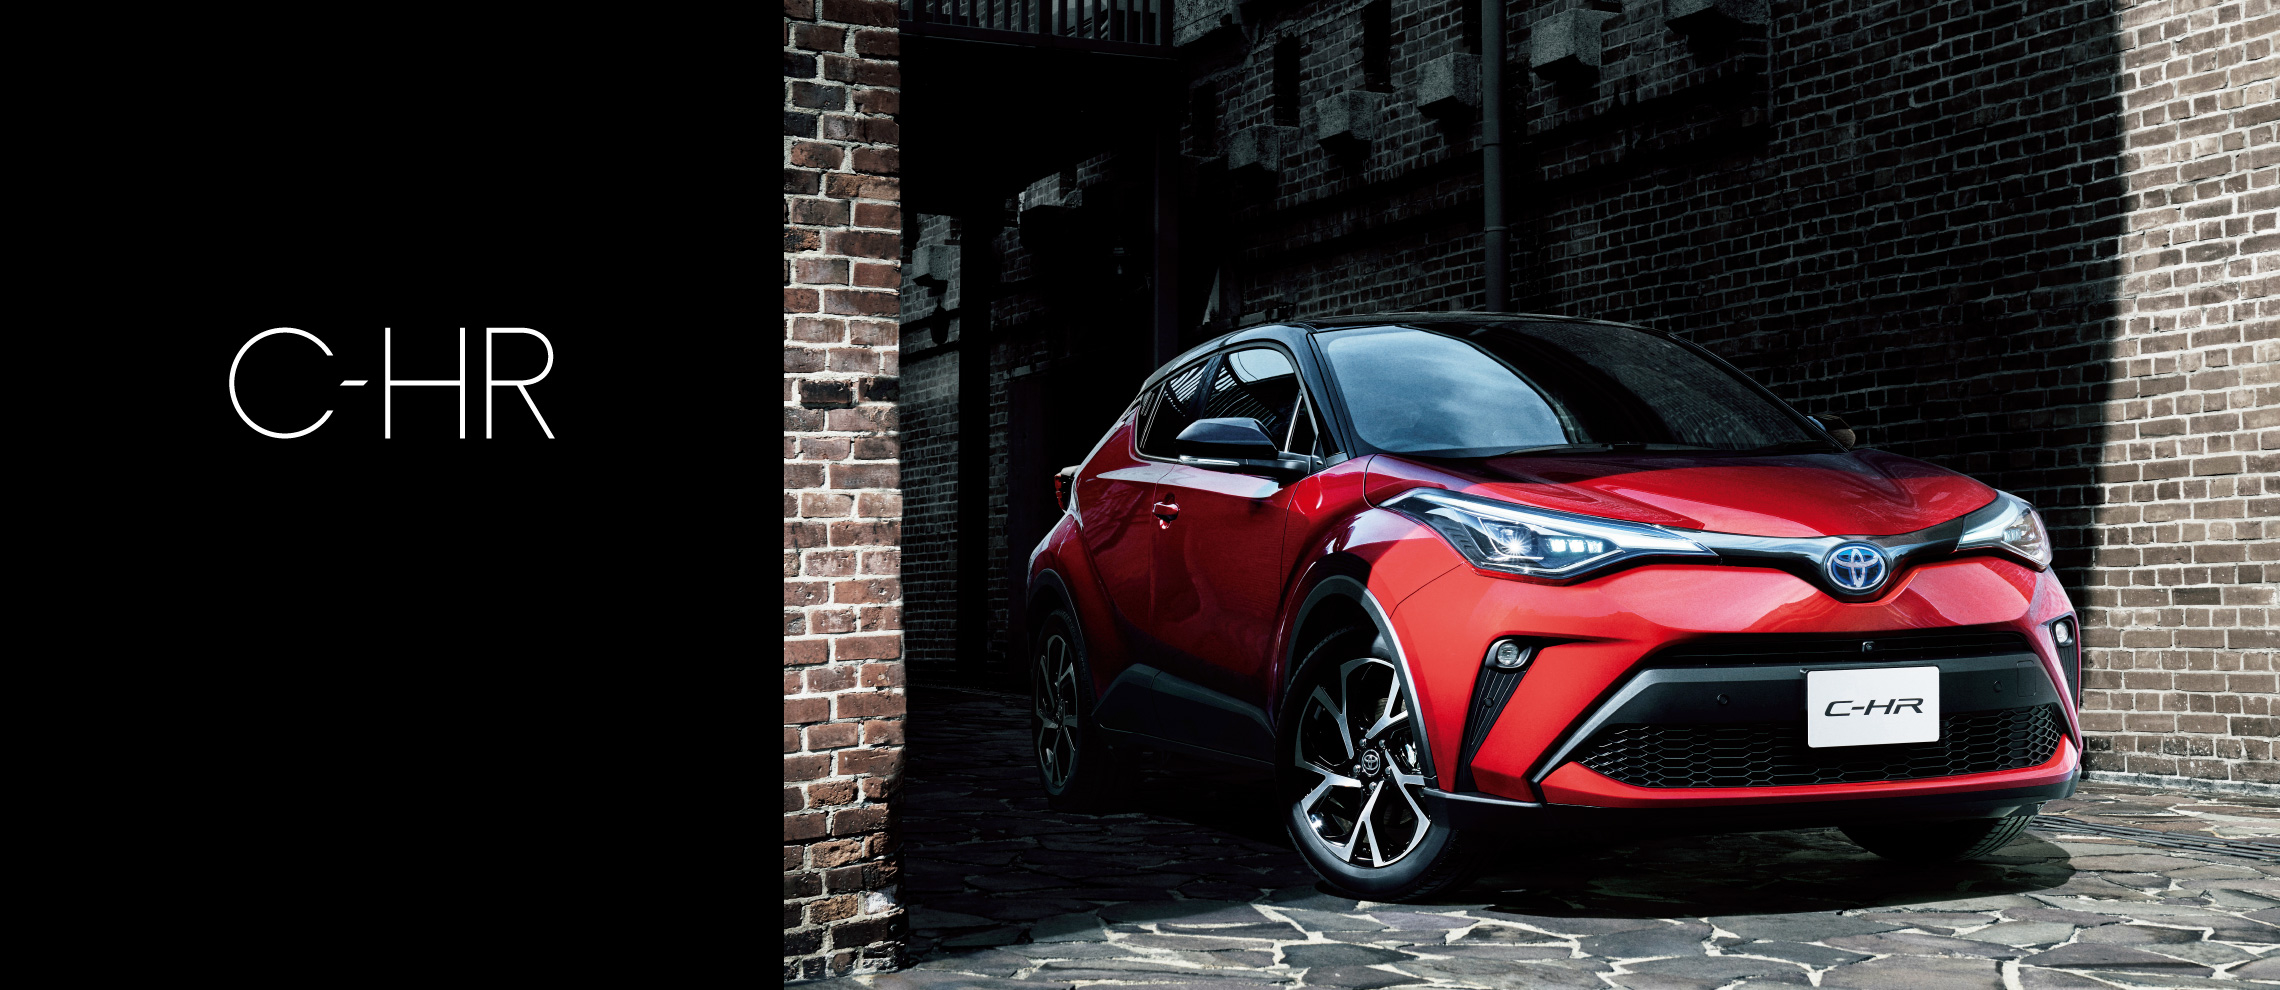 c-hr_top_img01